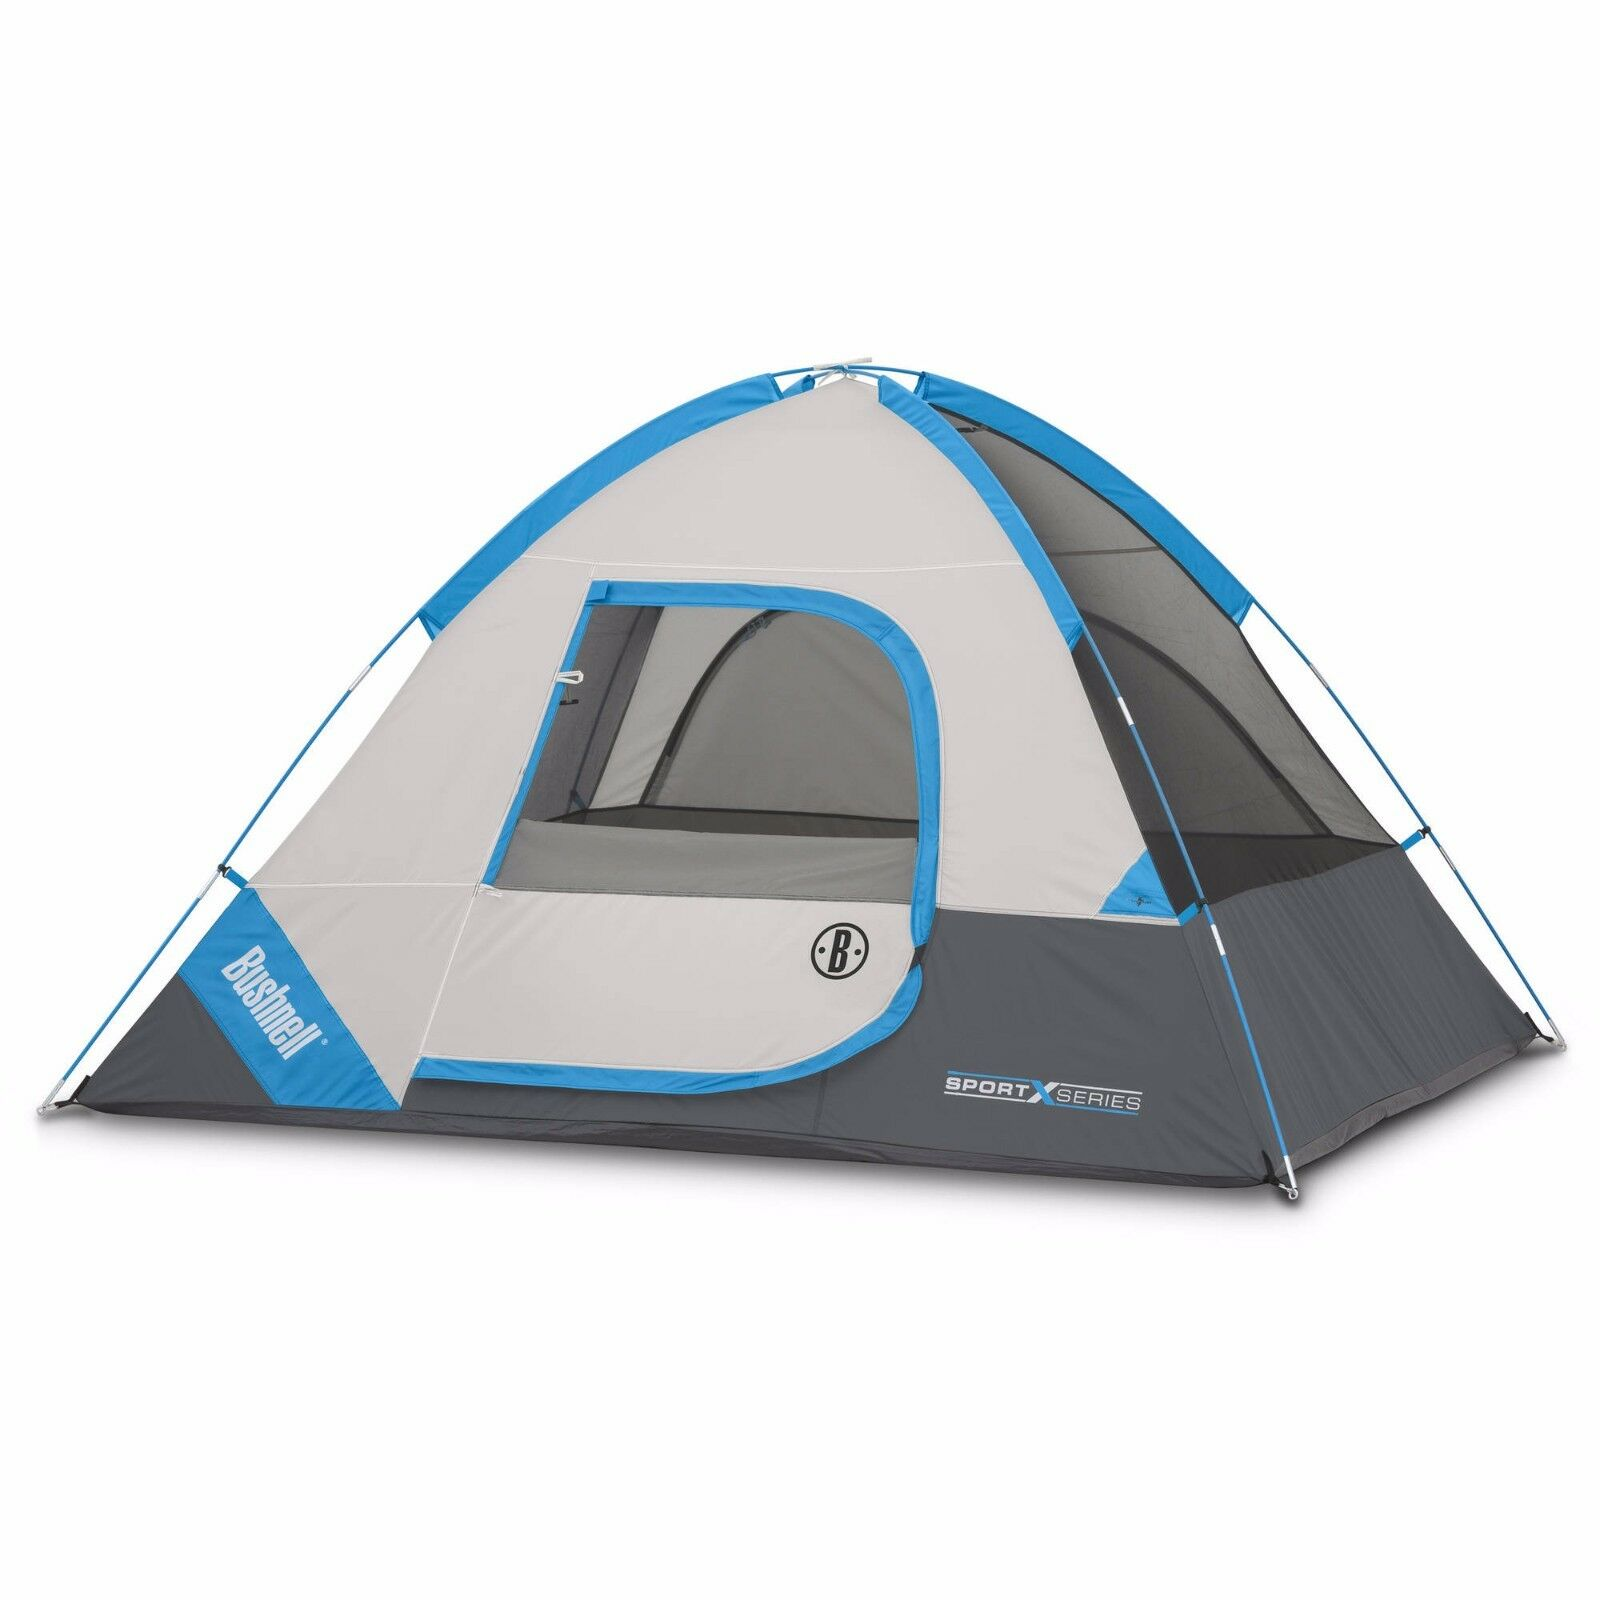 Bushnell sleeps 4 tent Sport Series 8' x 7' Dome adjustable ground vent camping